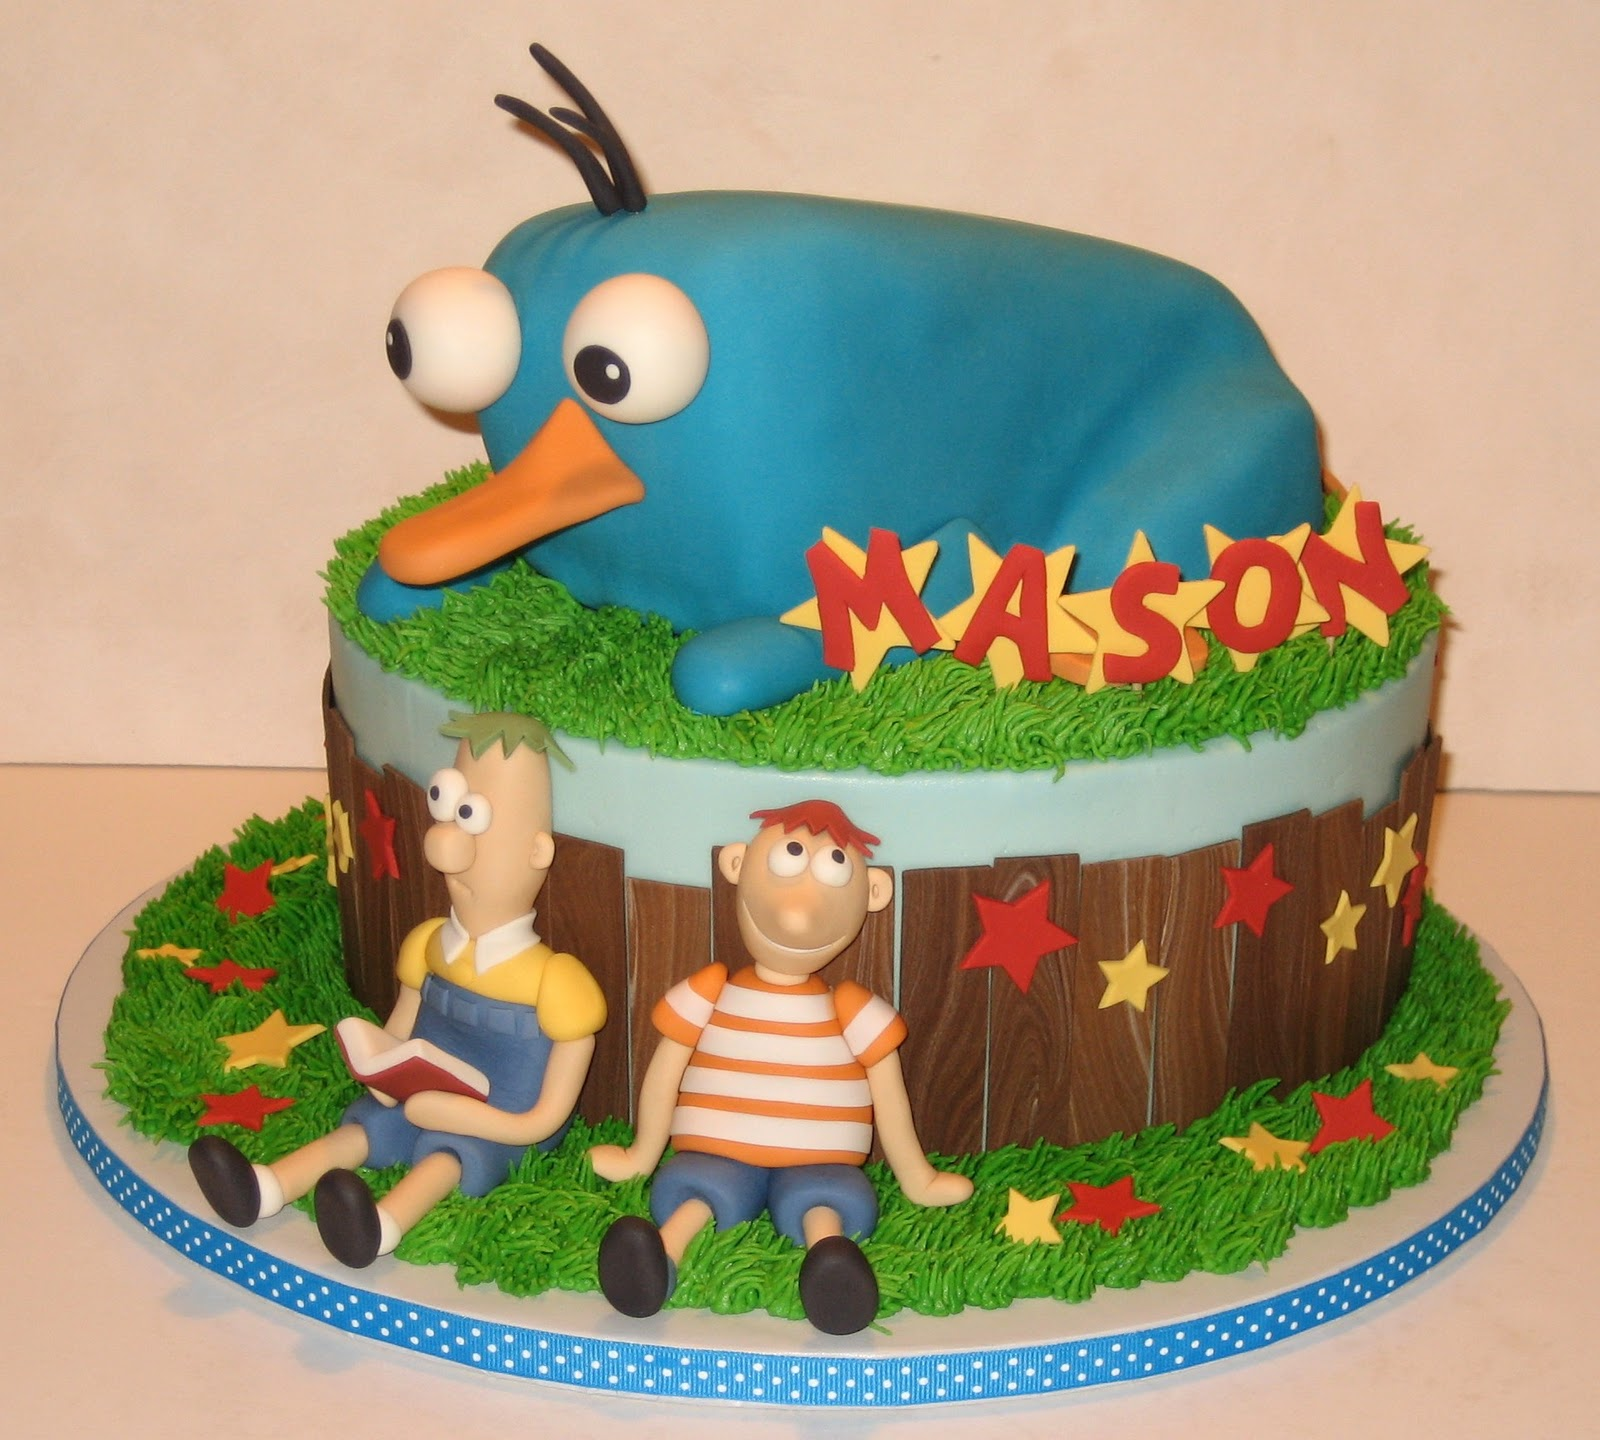 The Icing Cake Phineas And Ferb